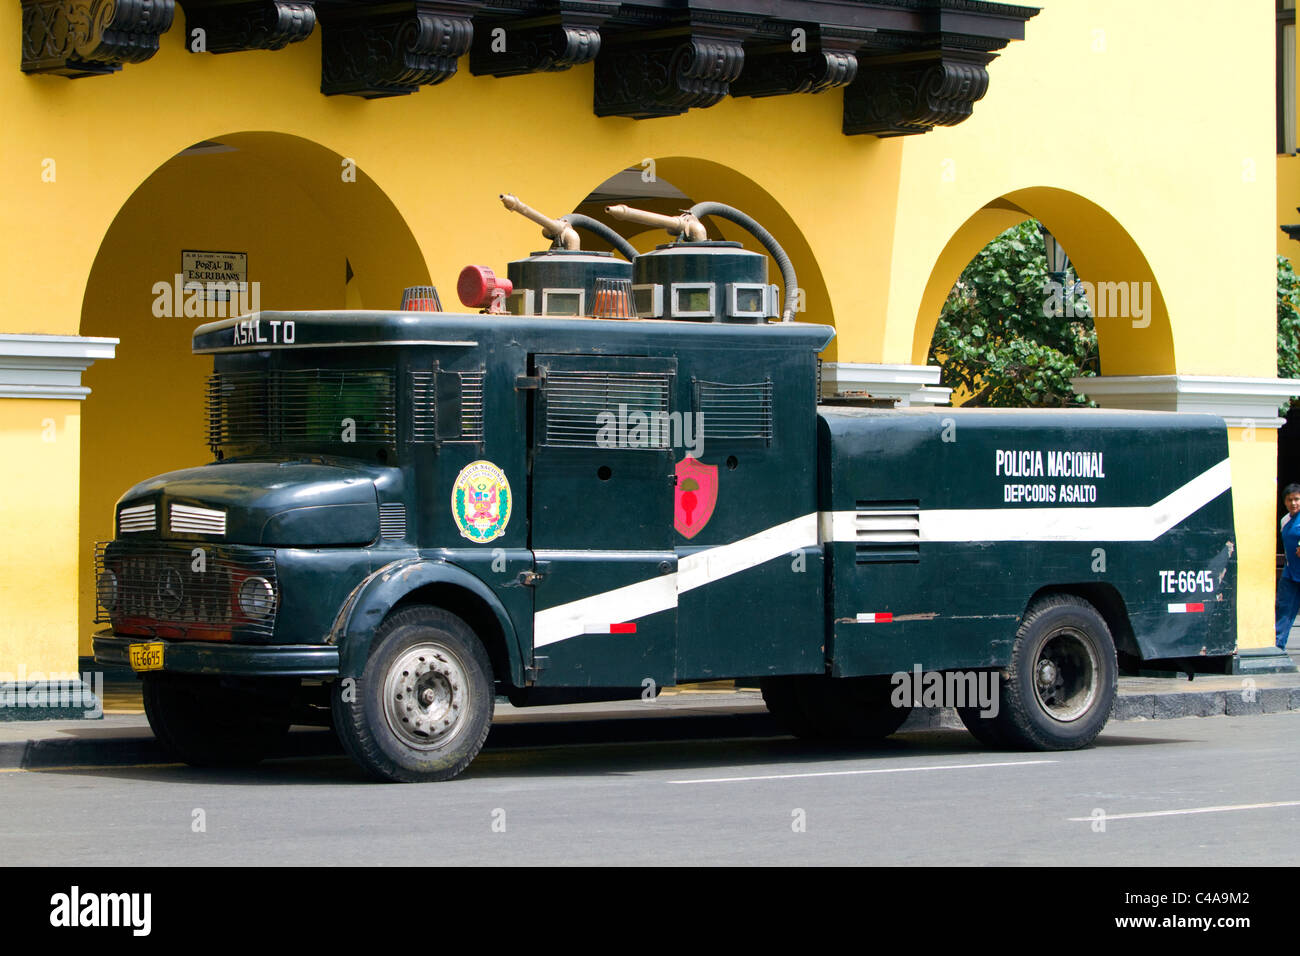 National police water cannon vehicle used for crowd control, parked at the Plaza Mayor or Plaza de Armas of Lima, - Stock Image